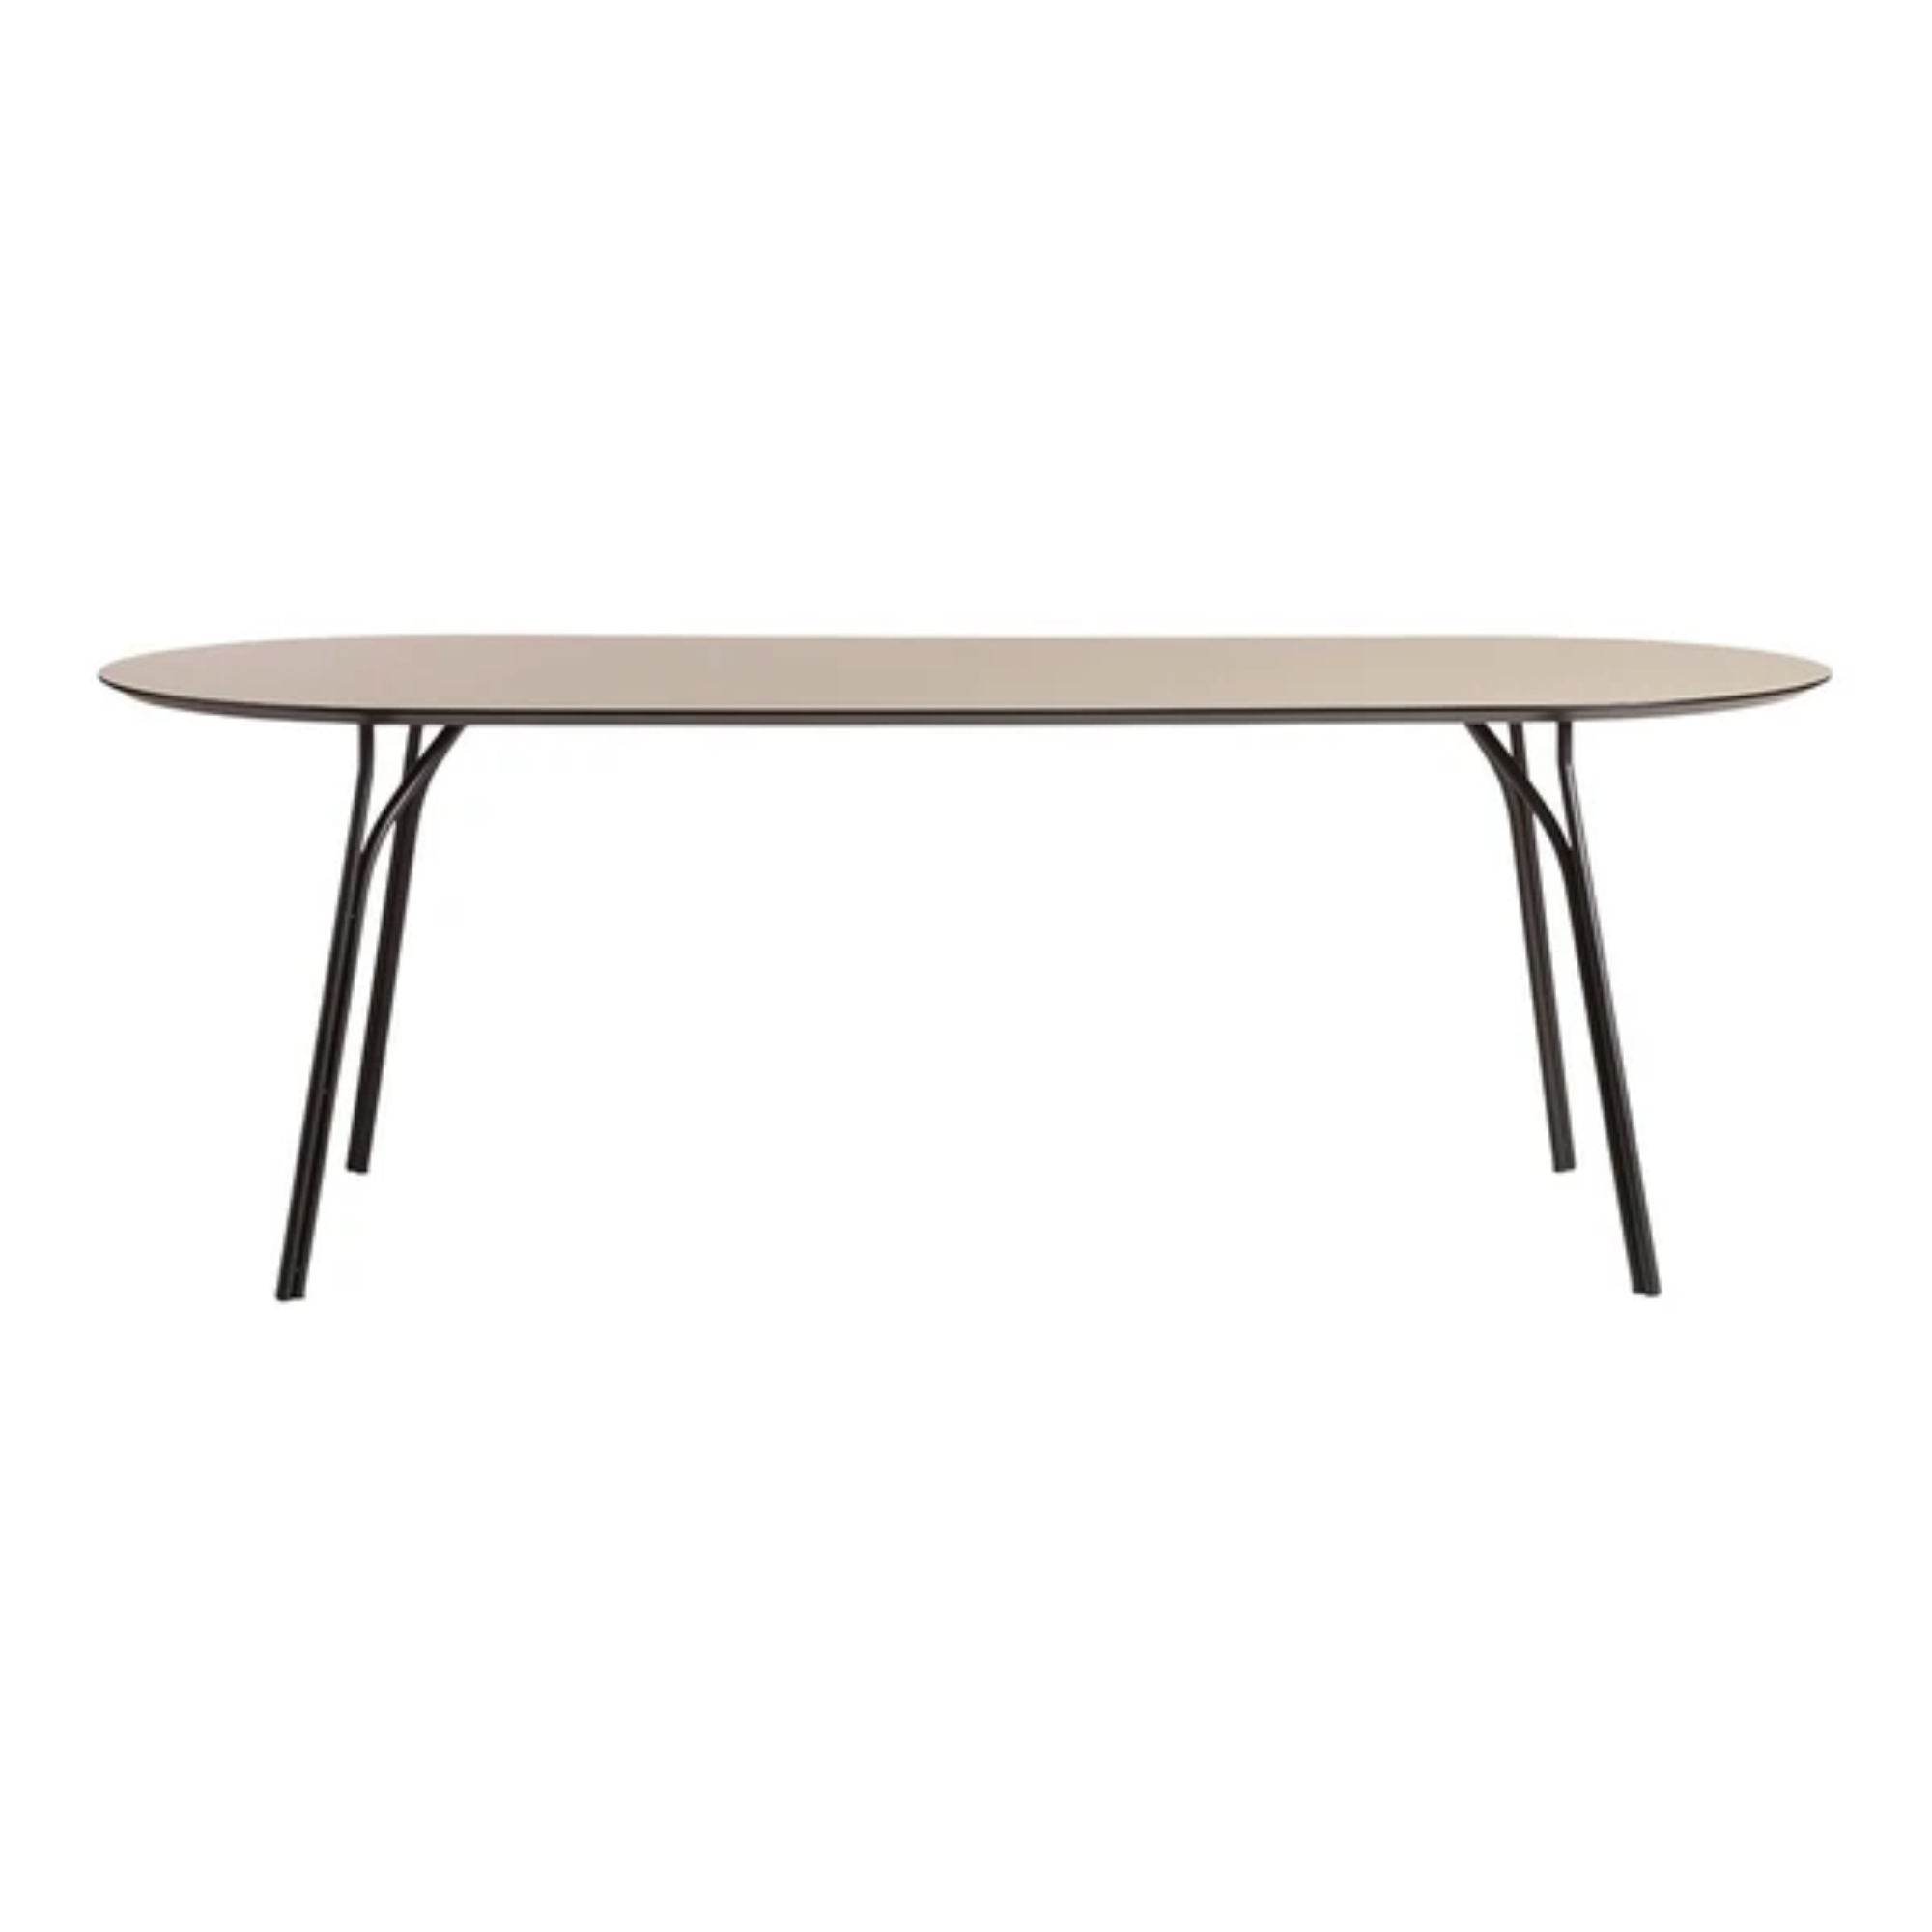 Woud Tree Dining Table 90x220cm , Beige Top-Black Legs